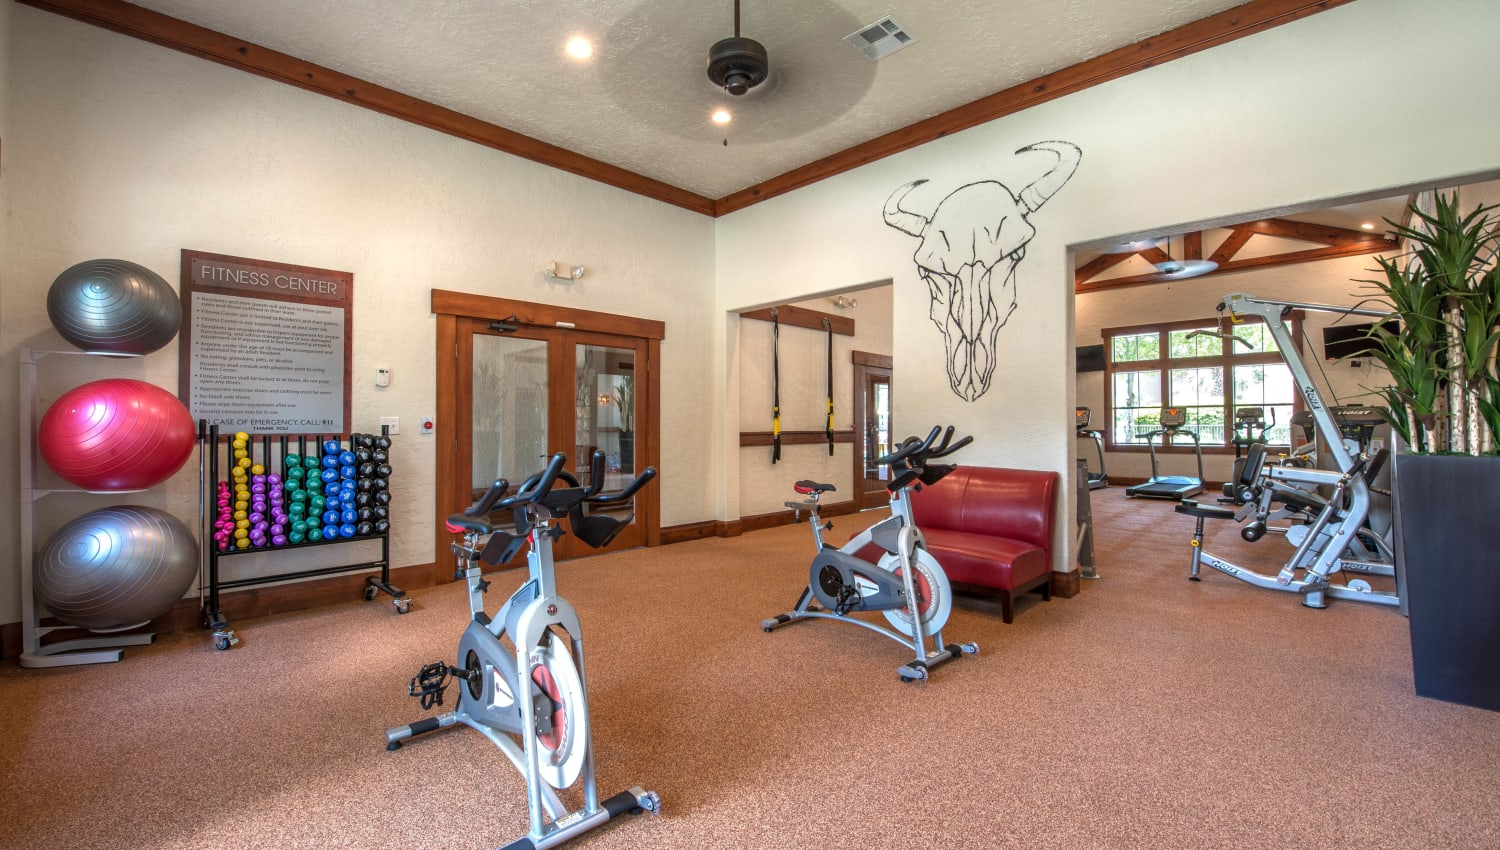 Exercise balls and bikes in the fitness center at The Ranch at Shadow Lake in Houston, Texas